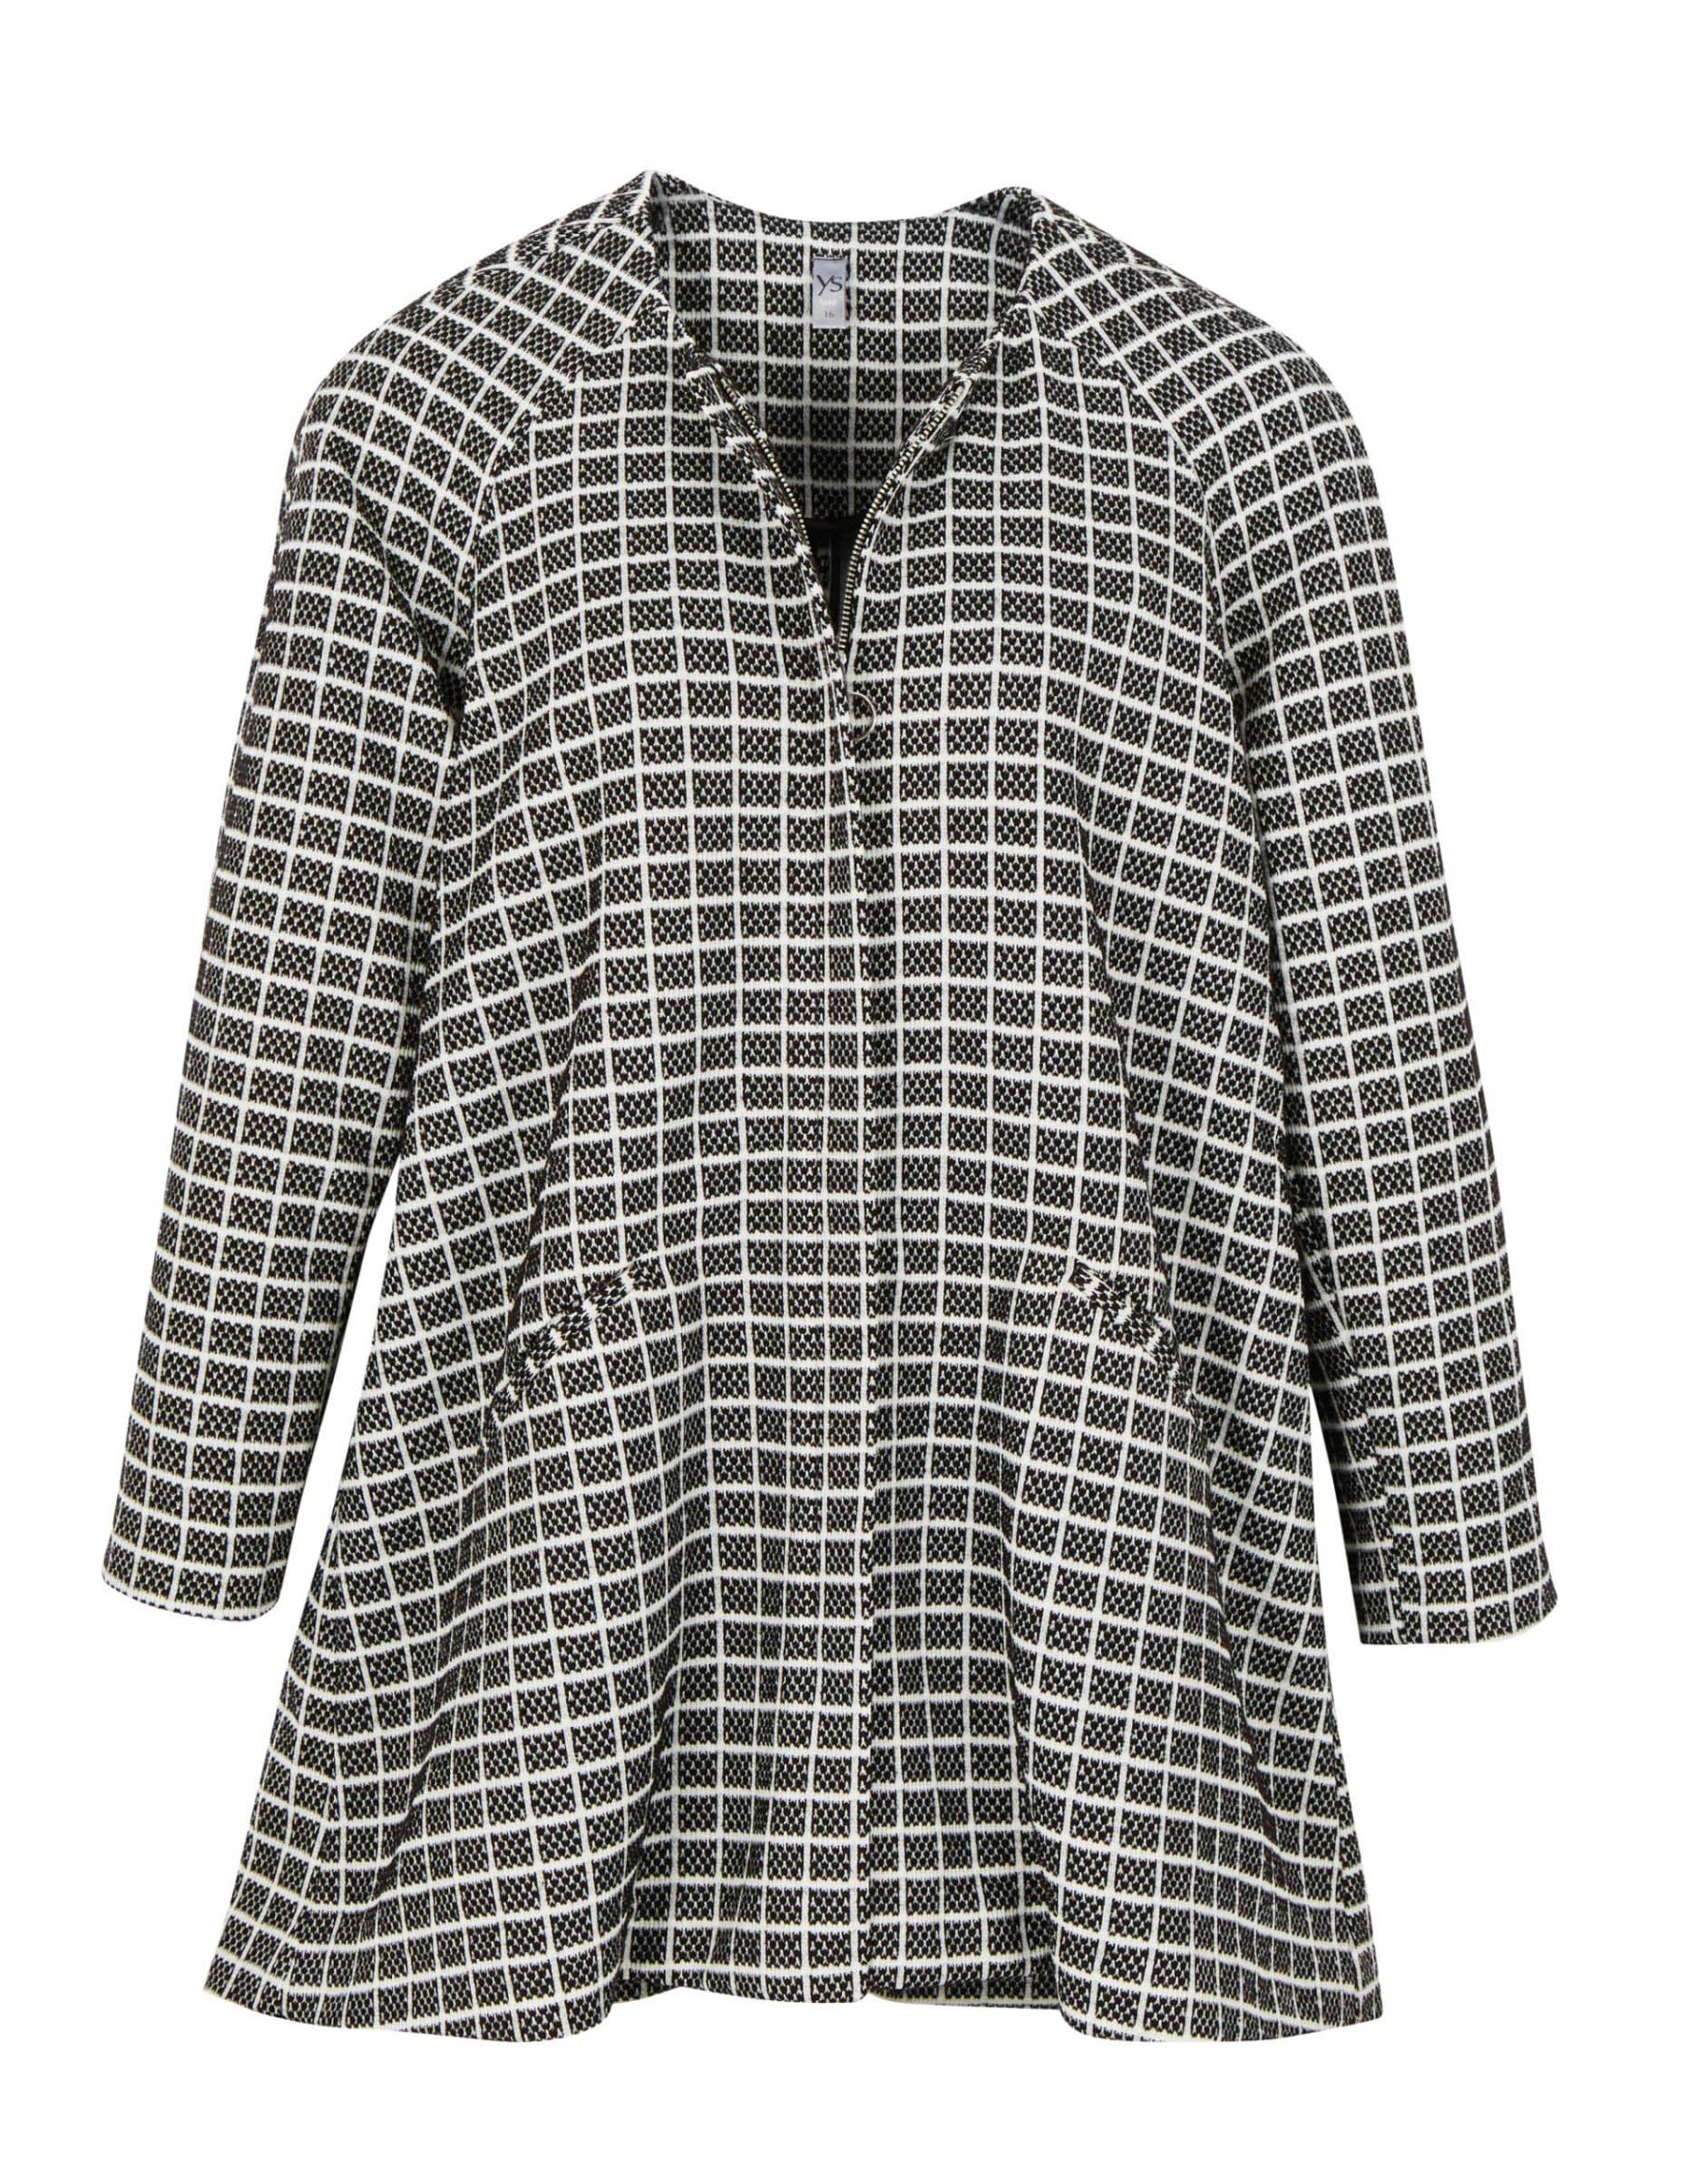 6089949 Yourself Check Knit Coat $149.99 Instore Feb 23 2016